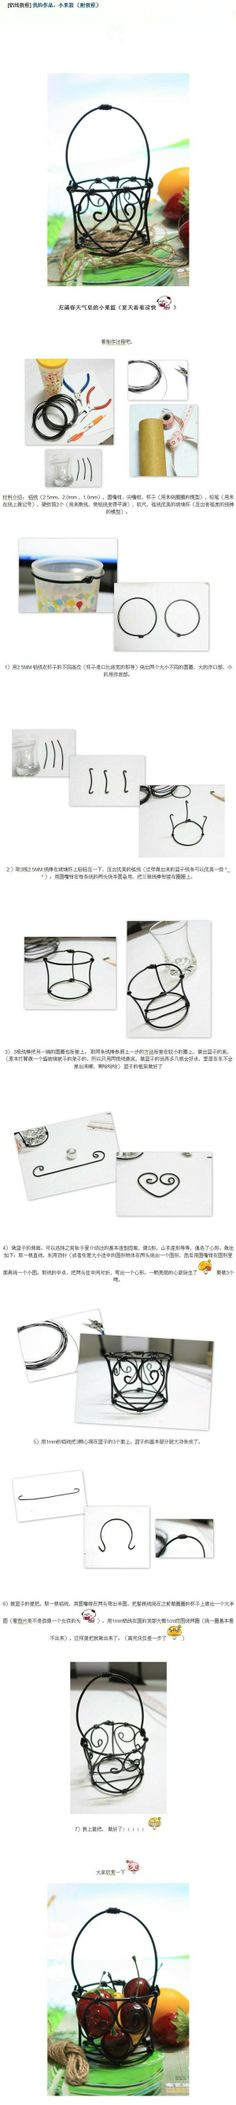 How to make a miniature wire basket for your dollhouse | Source: Daphne8080 @ Duitang